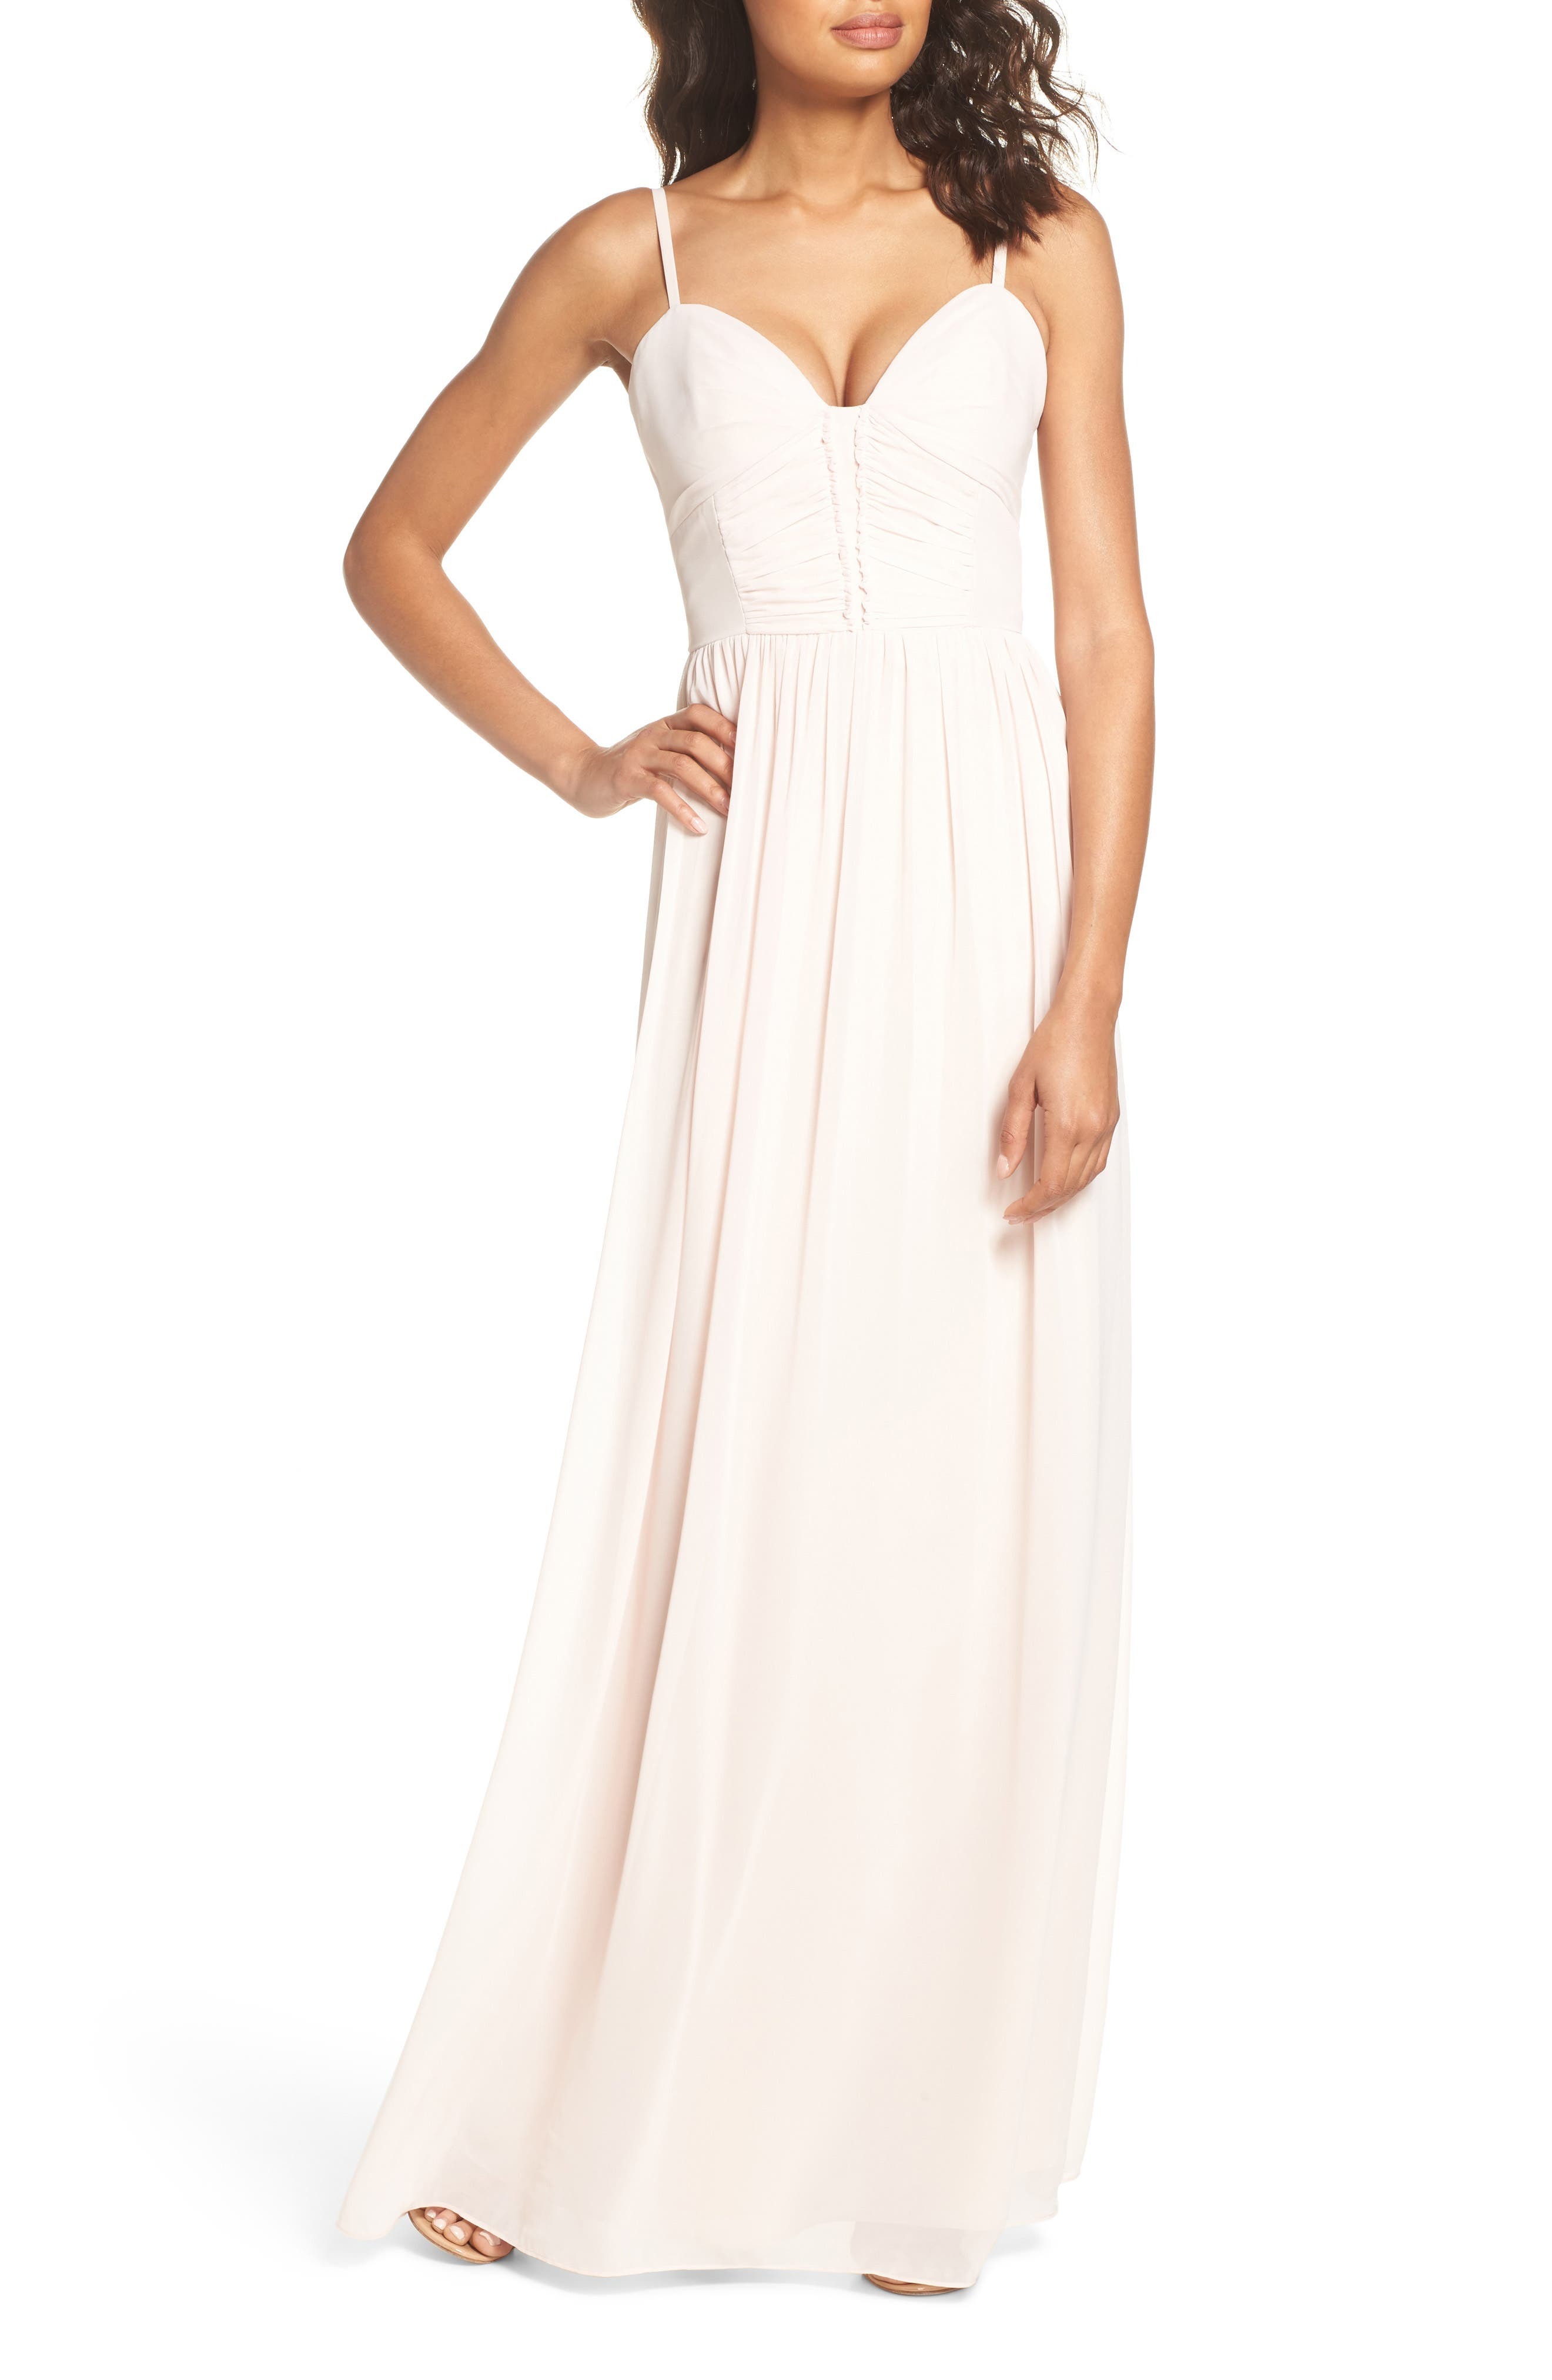 Main Image - Hayley Paige Occasions Ruffle Detail A-Line Chiffon Gown